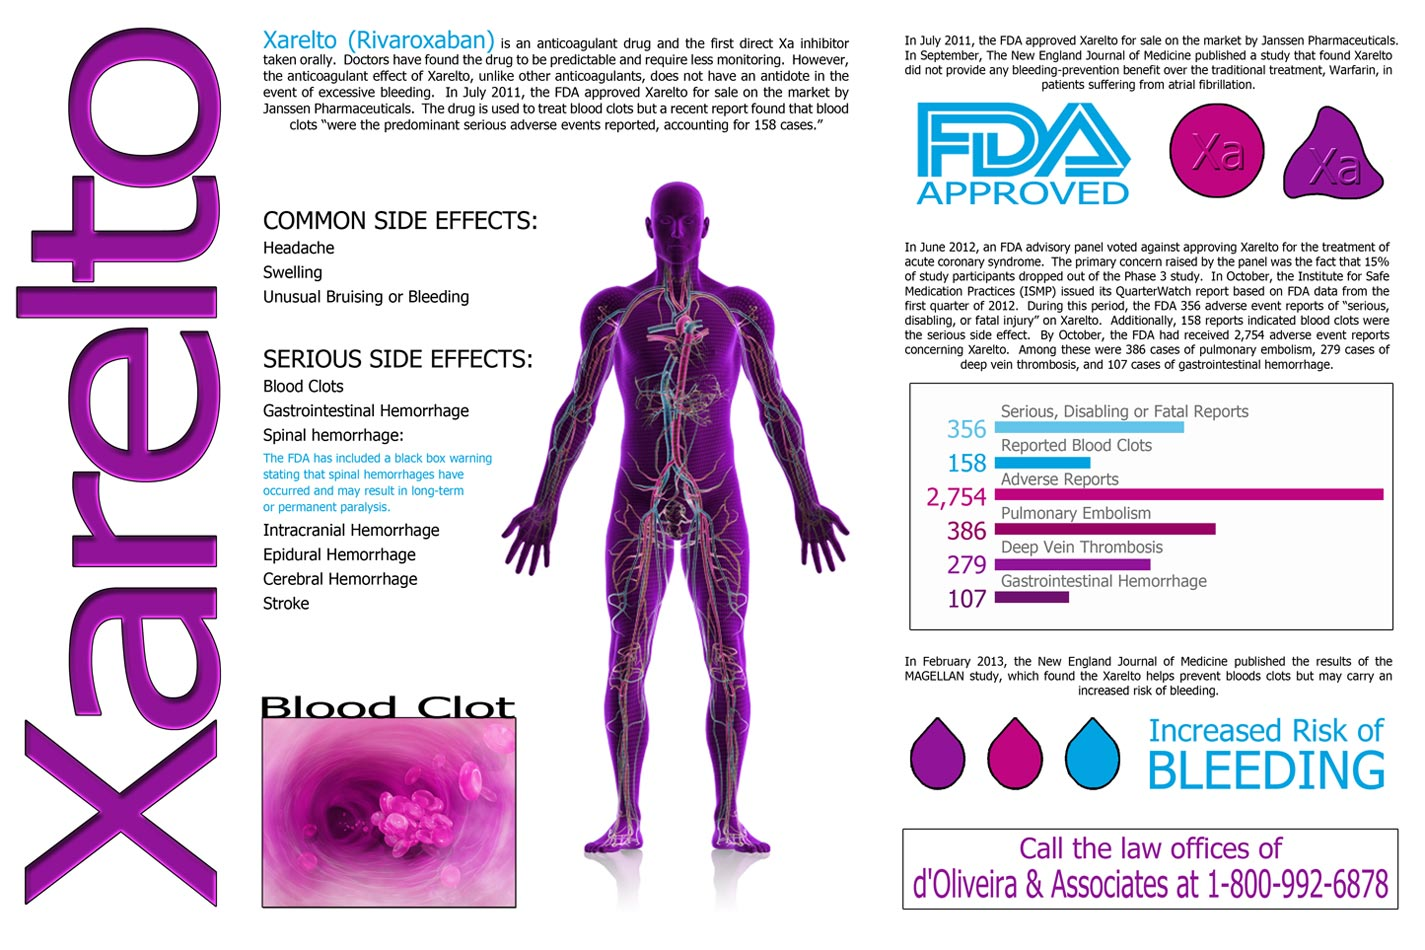 d'Oliveira & Associates Issues New Infographic on Xarelto ...